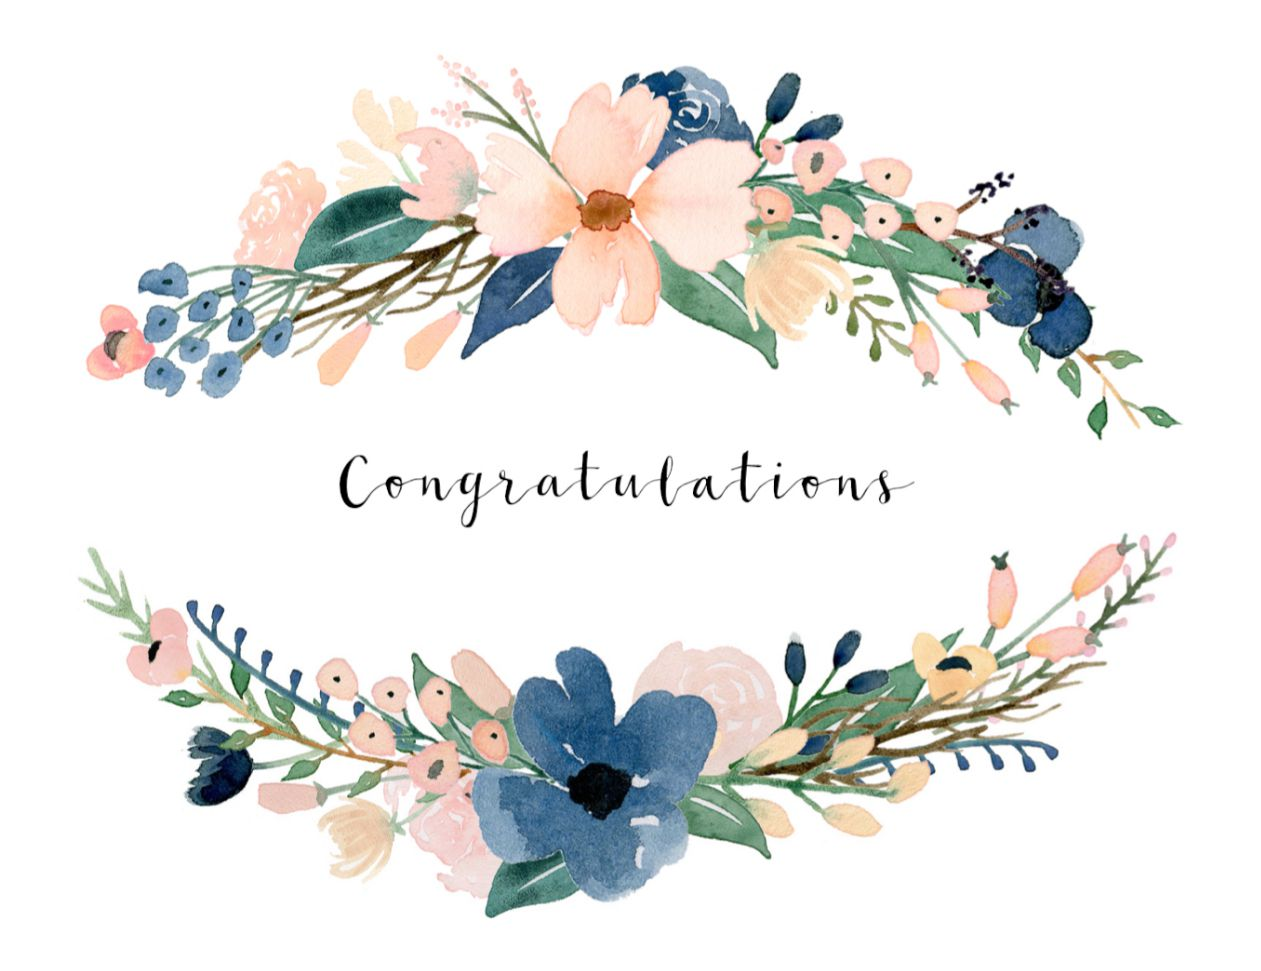 A watercolor flower card that says Congratulations.